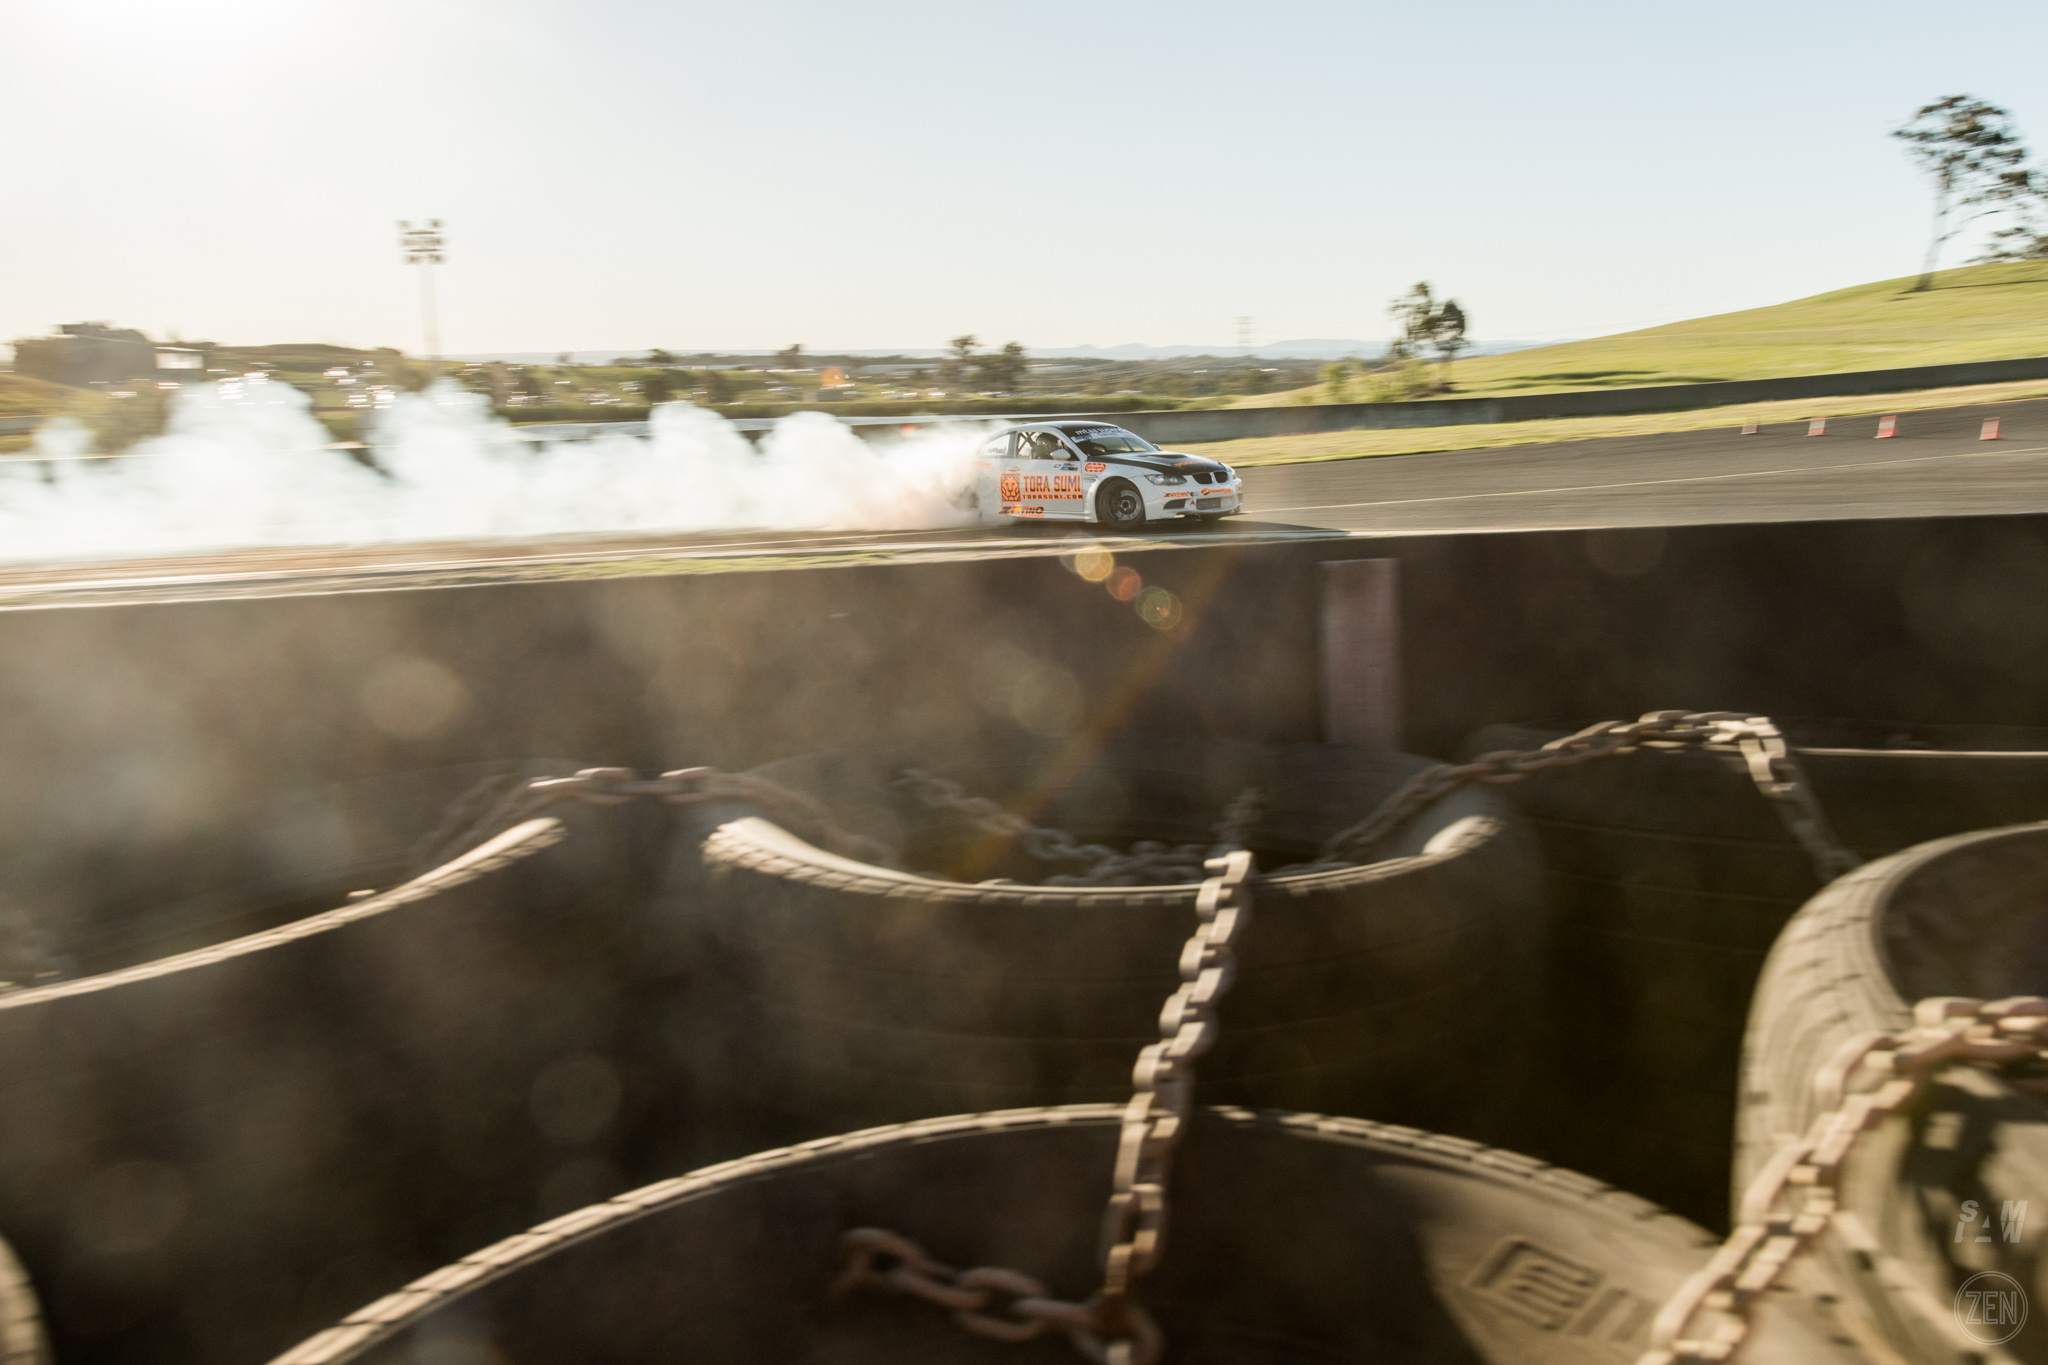 2019-10-18 - WTAC Day 01 061